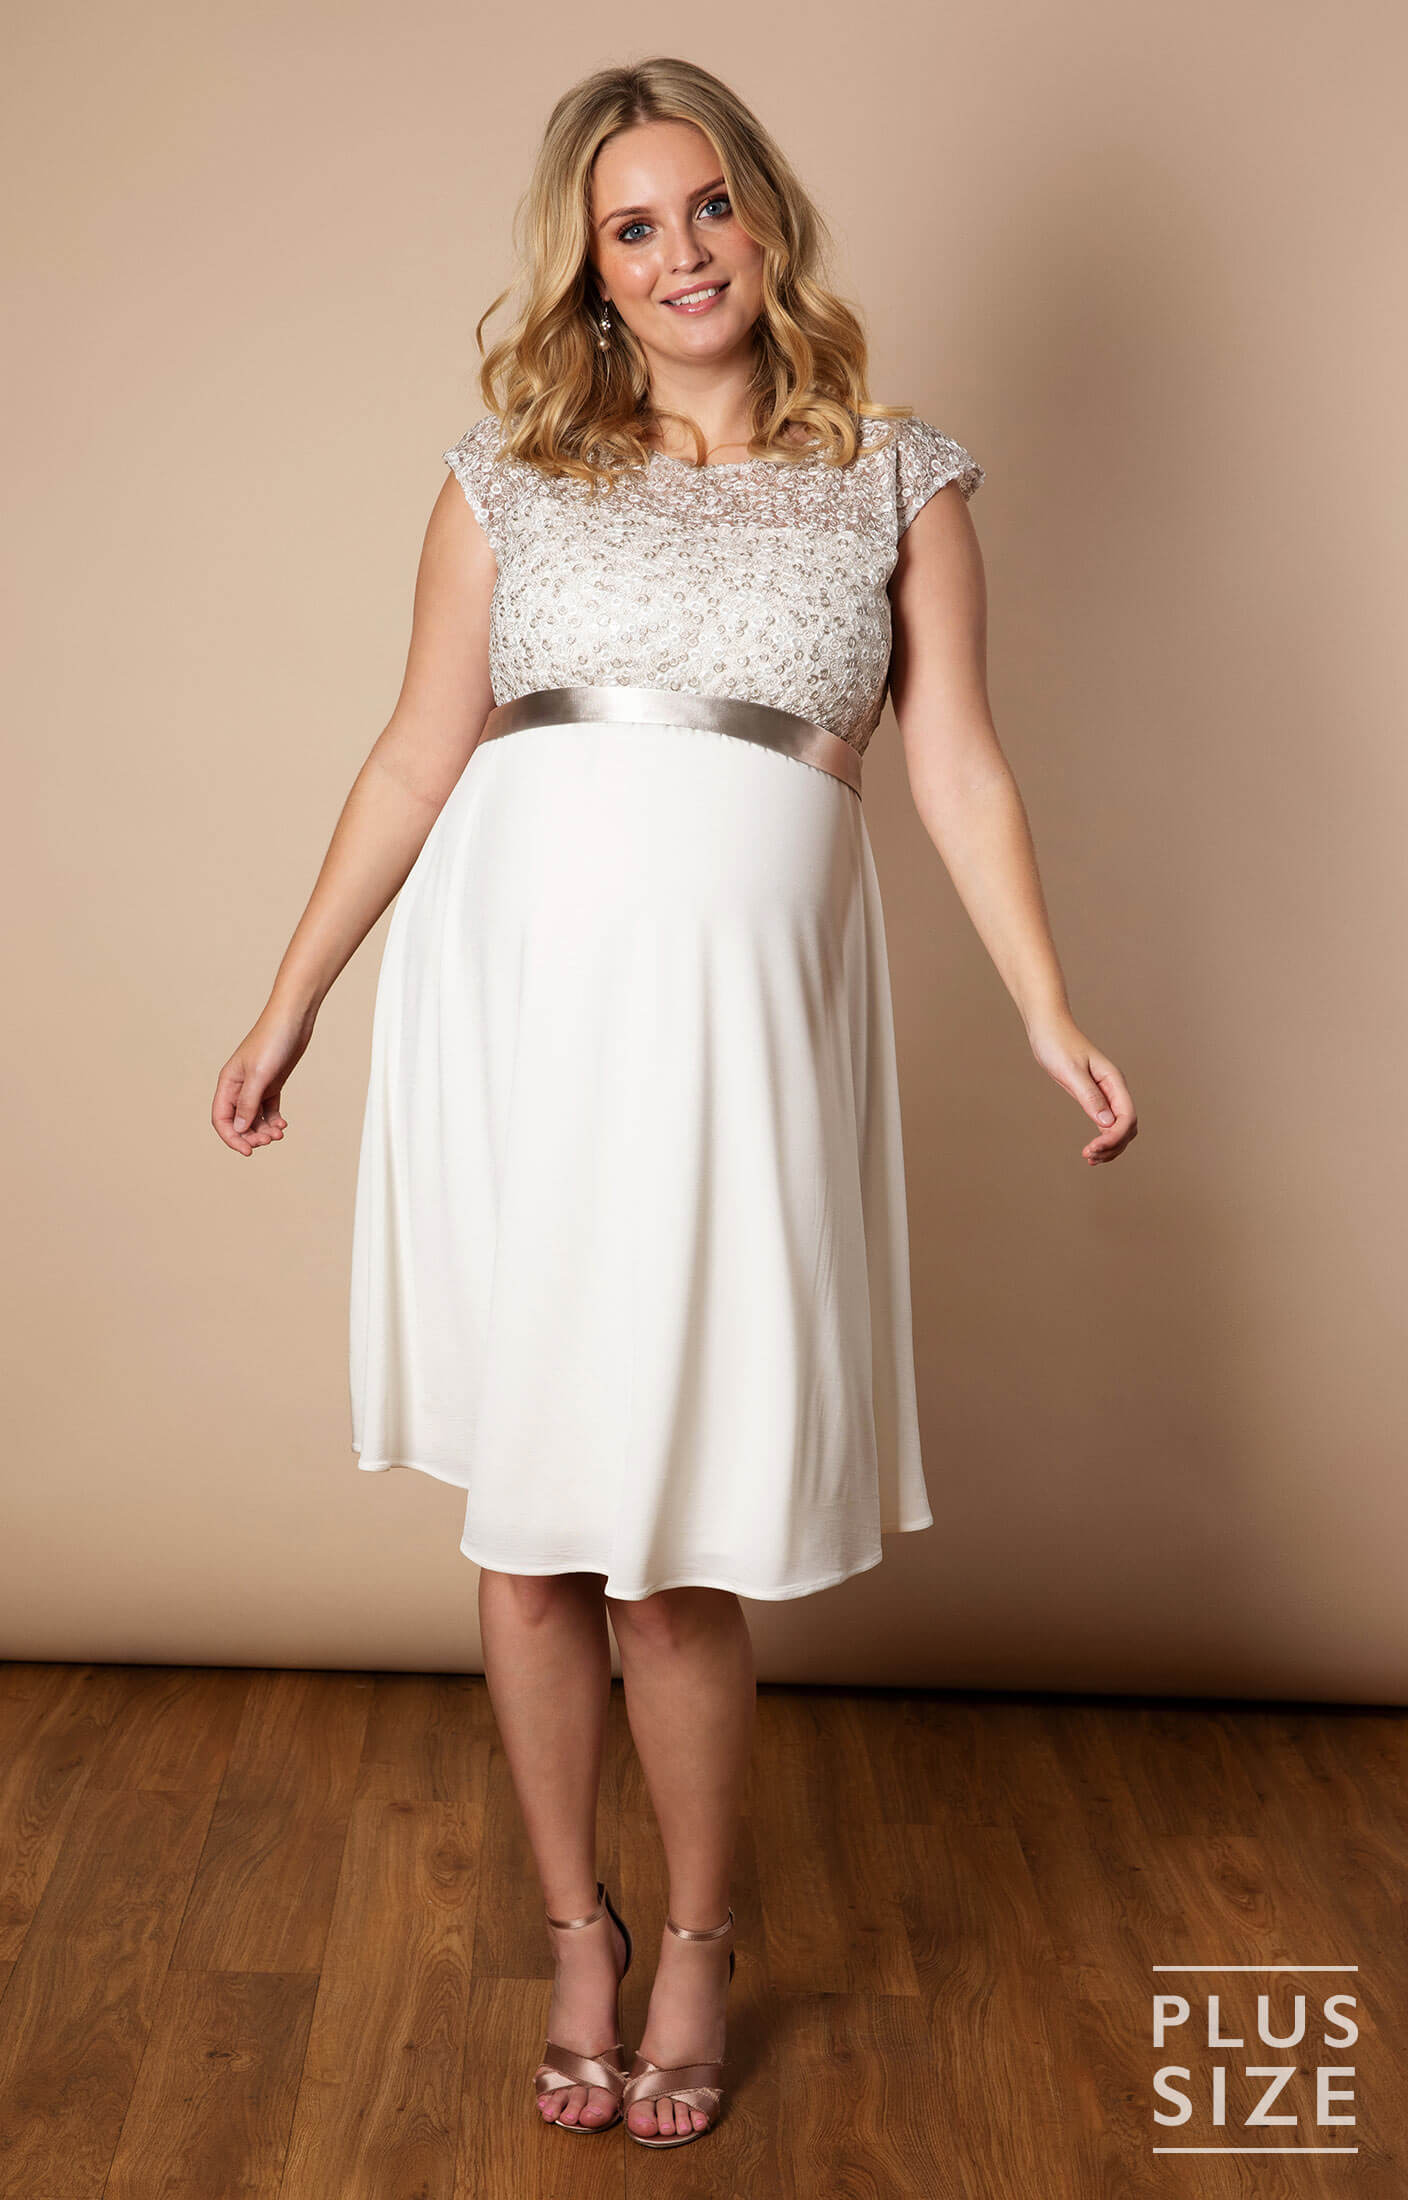 Mia Plus Size Maternity Dress Ivory - Maternity Wedding Dresses, Evening  Wear and Party Clothes by Tiffany Rose